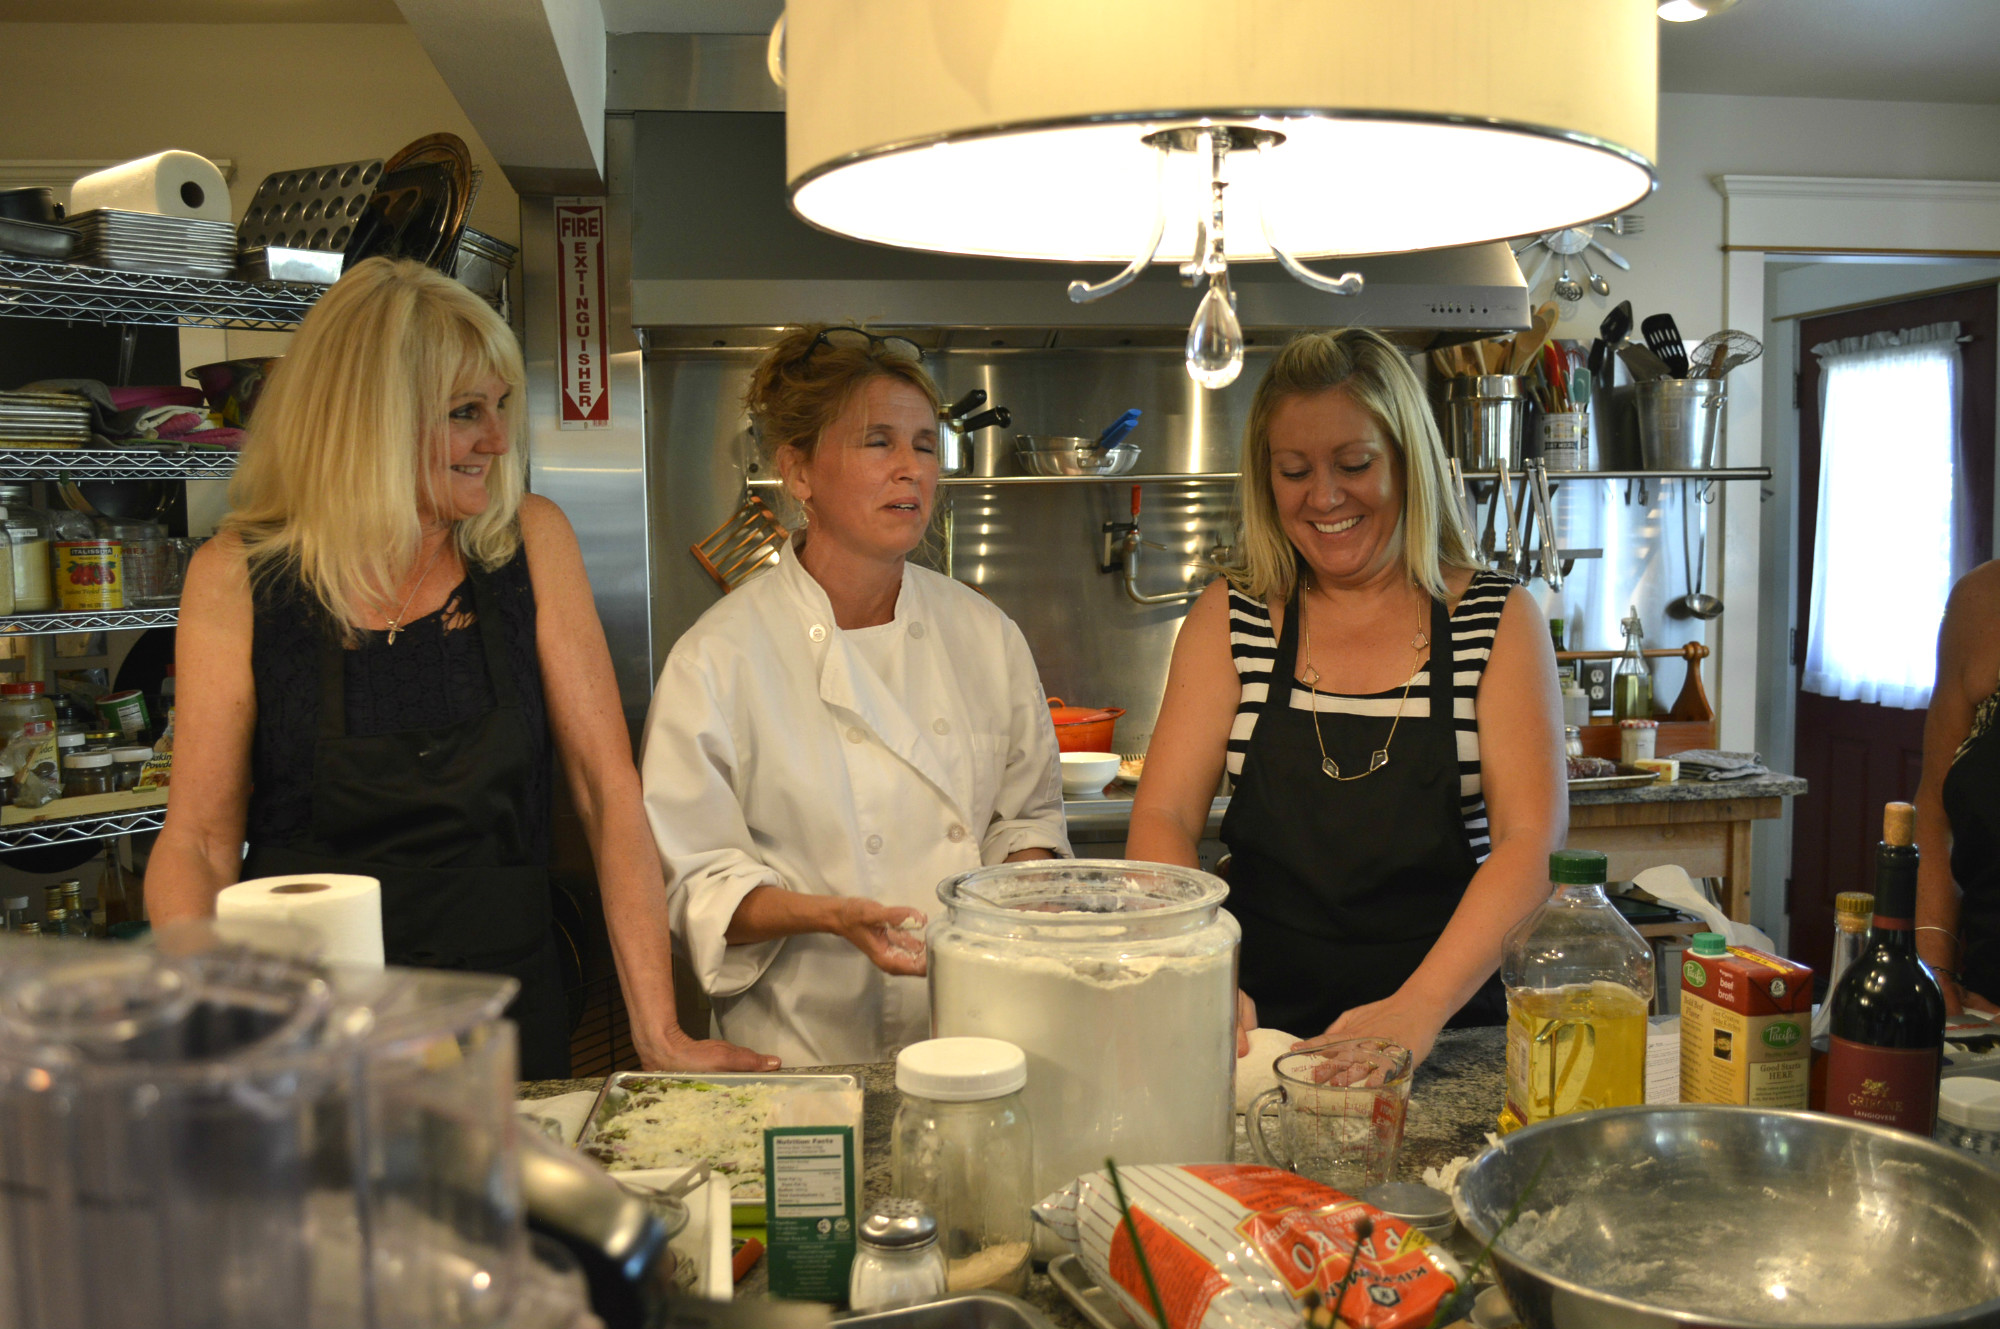 Jill, chef Kary, and Heidi.